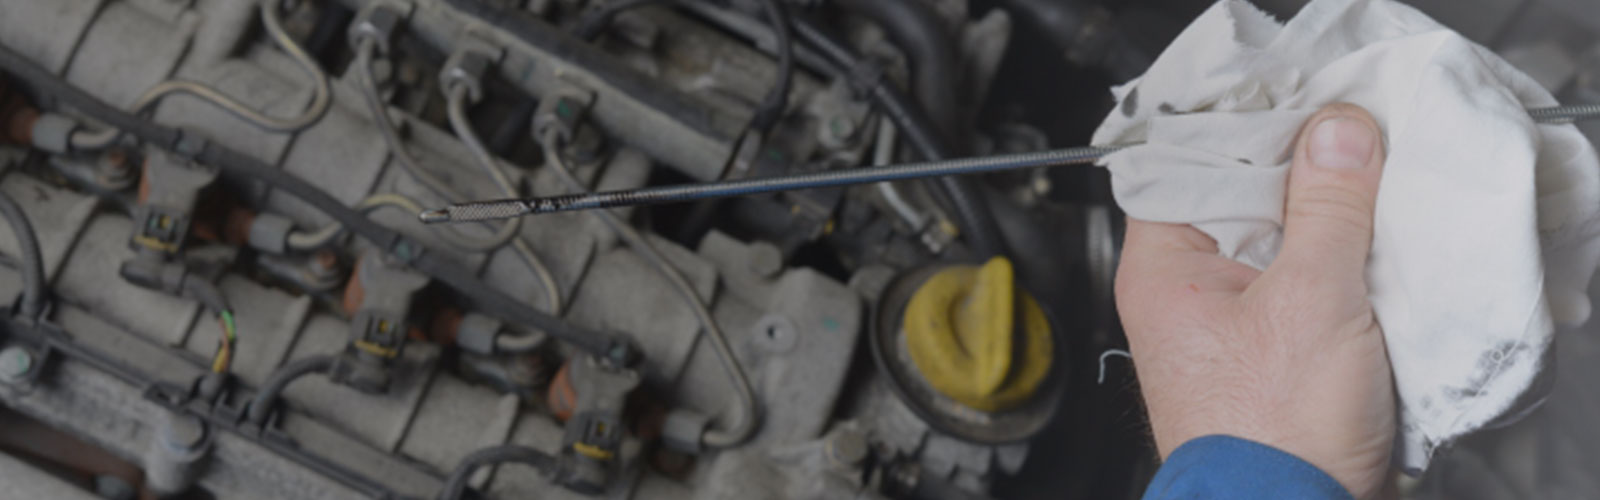 To keep running smoothly, your car highly relies on oil, lube, and oil filters.